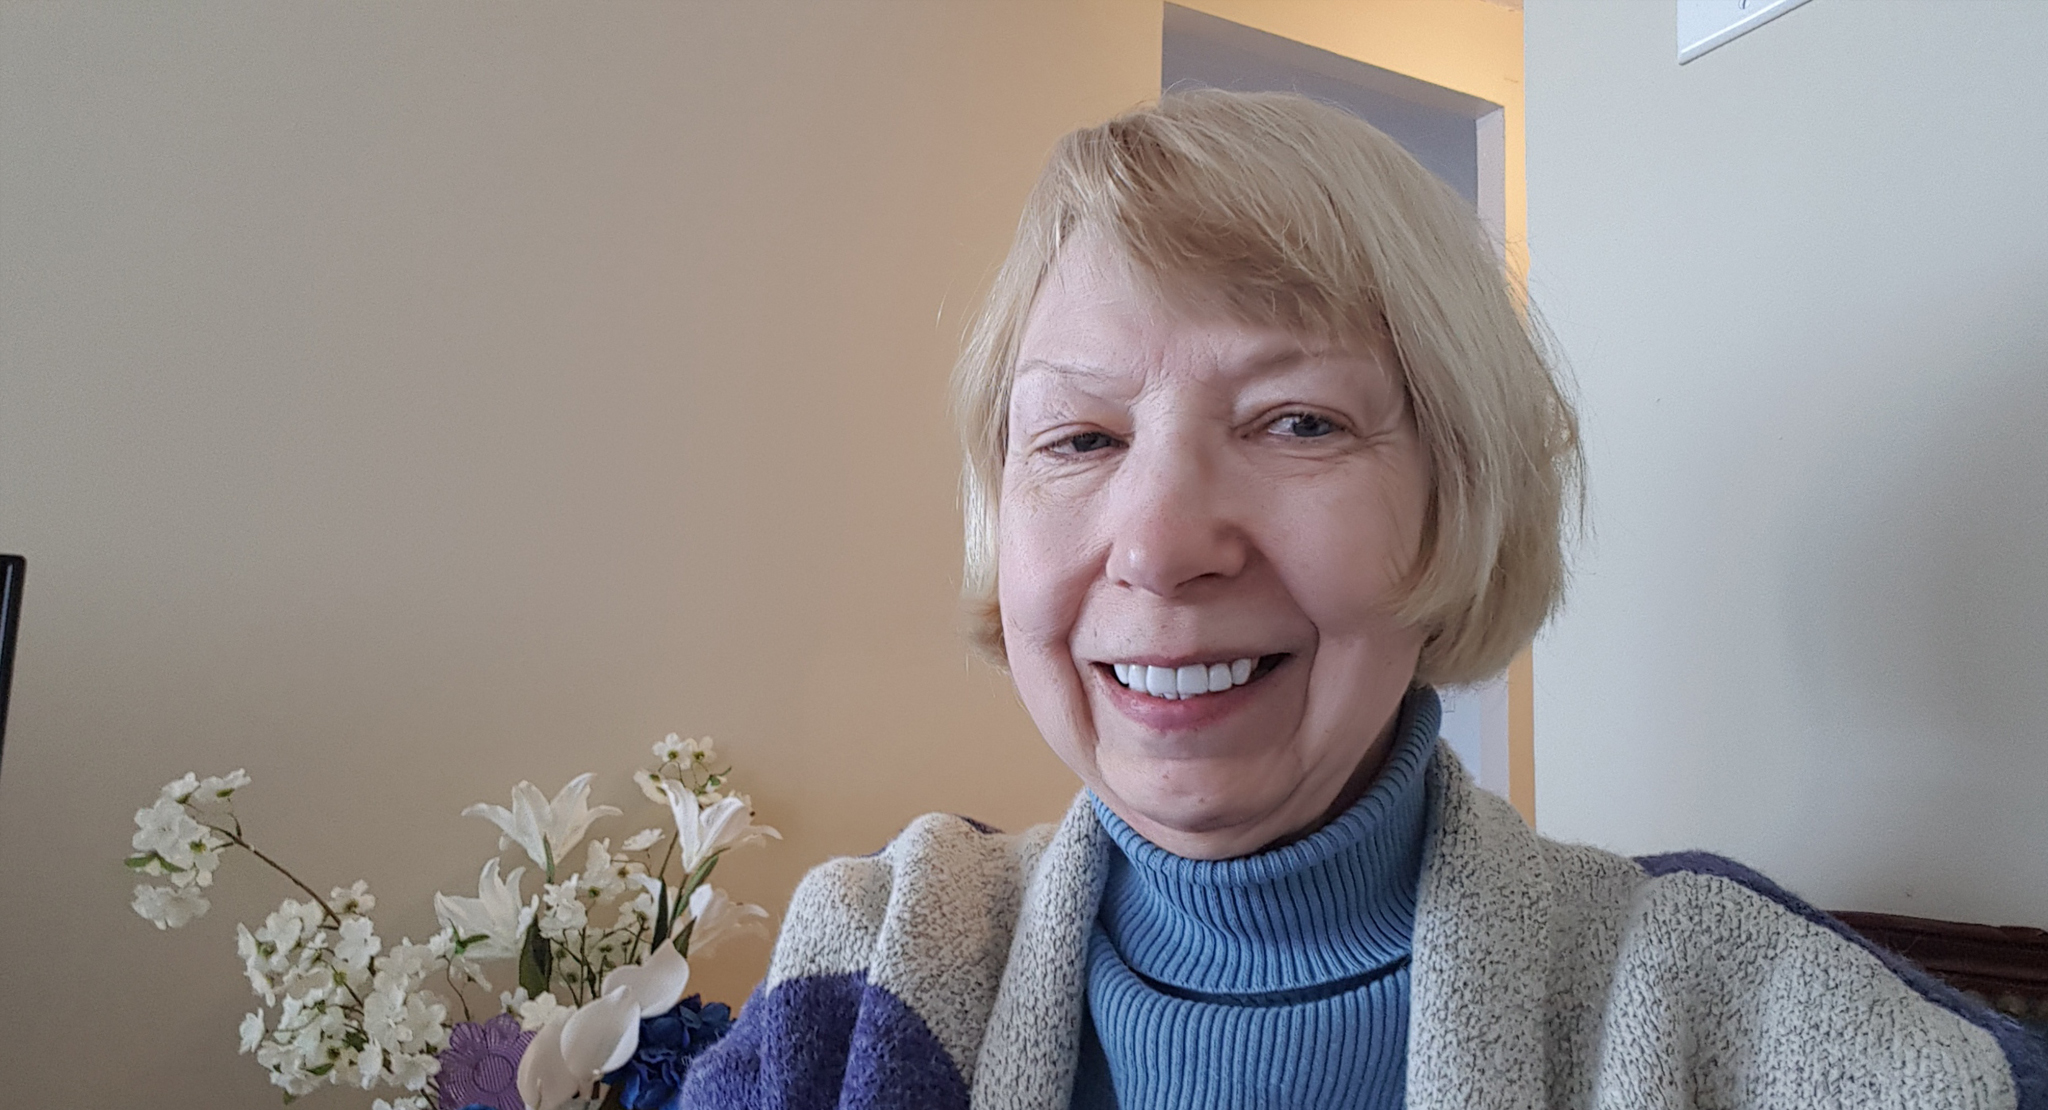 The Art of Giving: An Interview with Nancy Fedorovitch